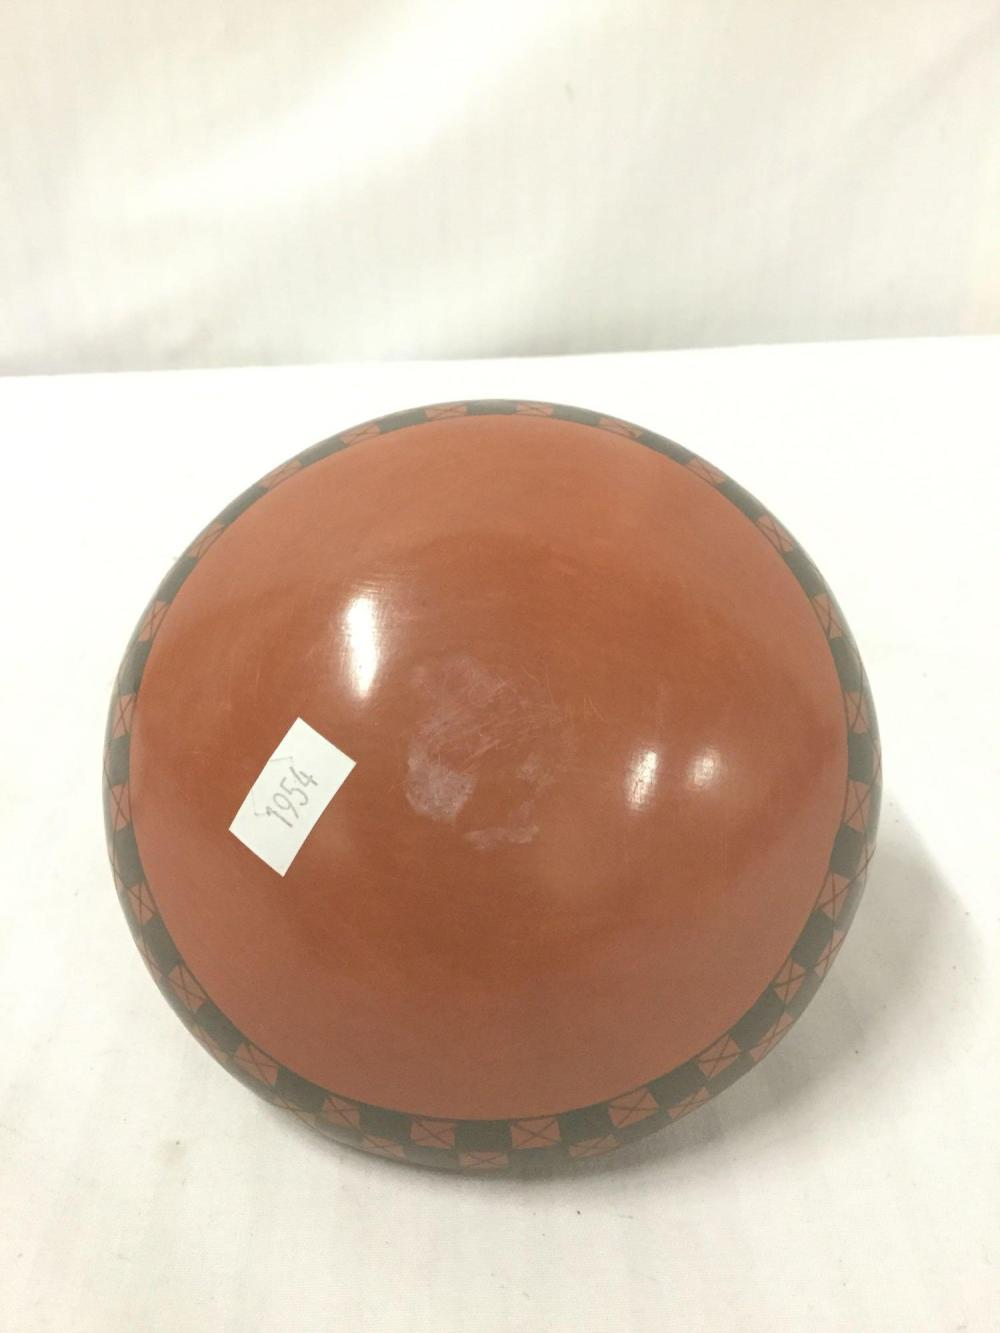 Lot 70: Ceramic vase with a checkerboard pattern from the State of Chihuahua in Mexico - signed by artist